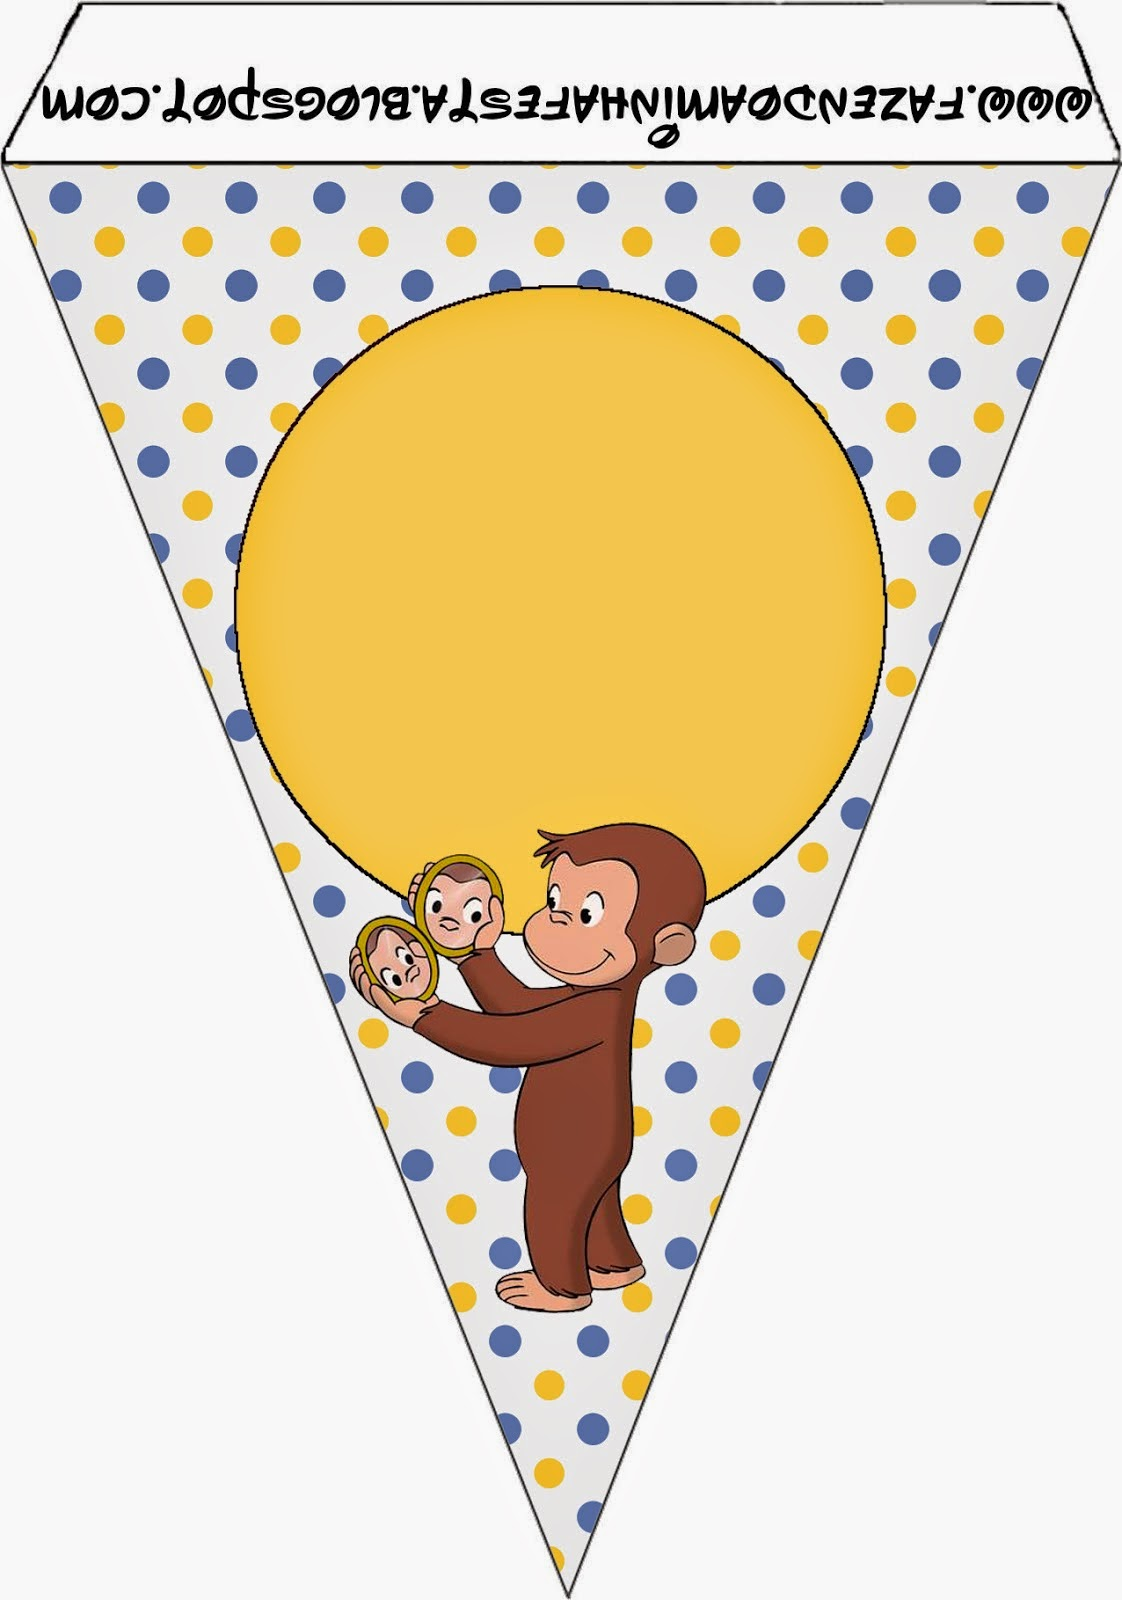 image about Curious George Printable named Curious George Cost-free Bash Printables. - Oh My Fiesta! inside of english